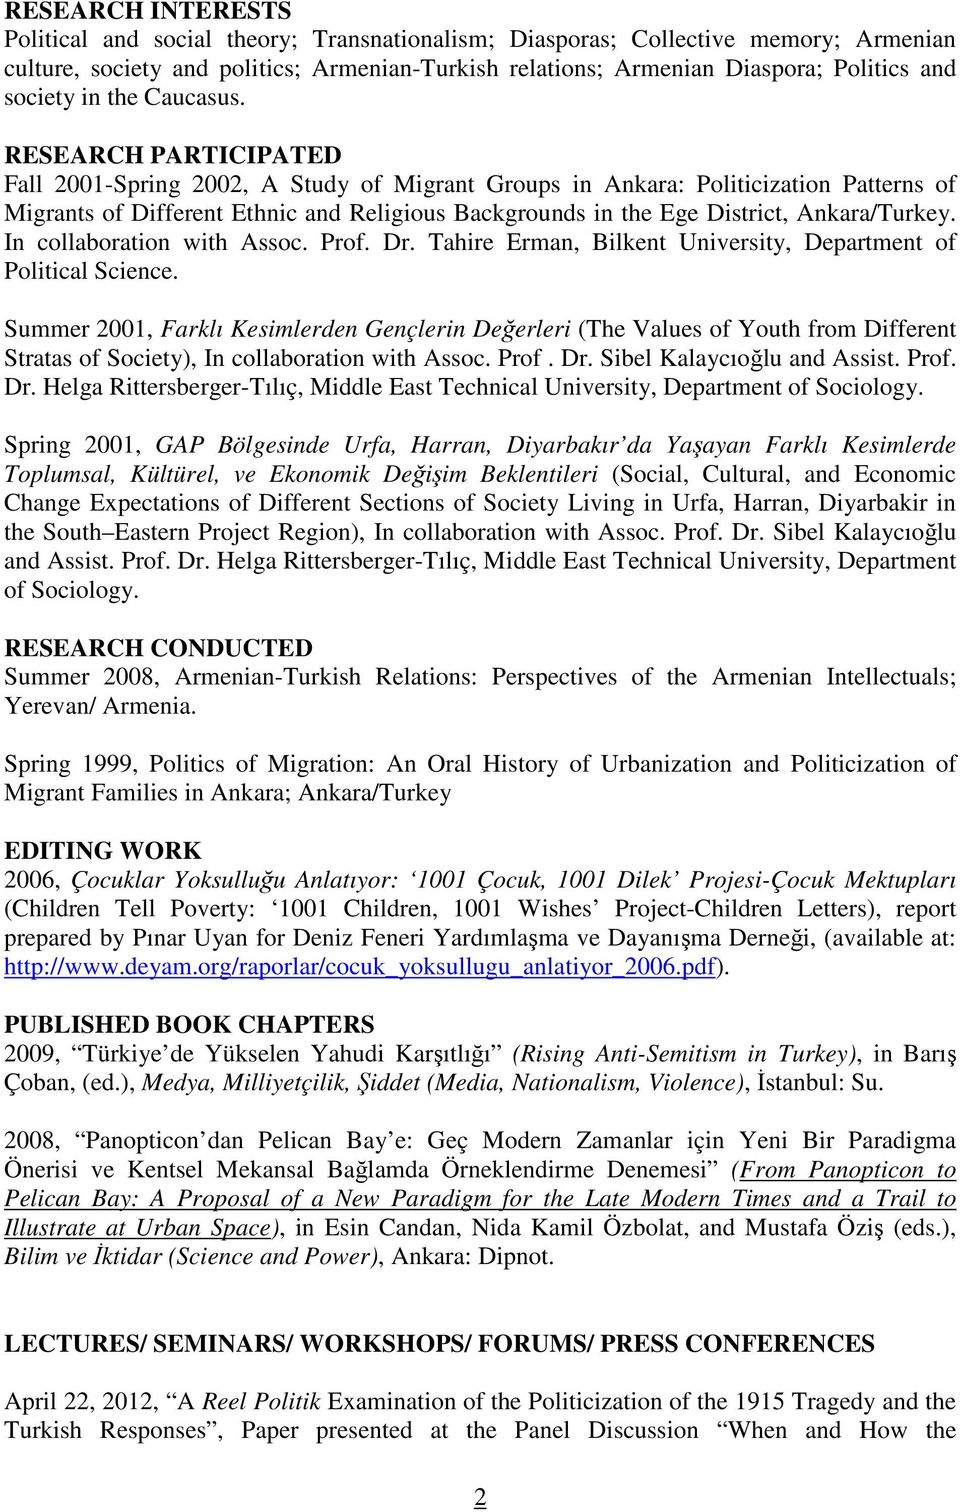 RESEARCH PARTICIPATED Fall 2001-Spring 2002, A Study of Migrant Groups in Ankara: Politicization Patterns of Migrants of Different Ethnic and Religious Backgrounds in the Ege District, Ankara/Turkey.